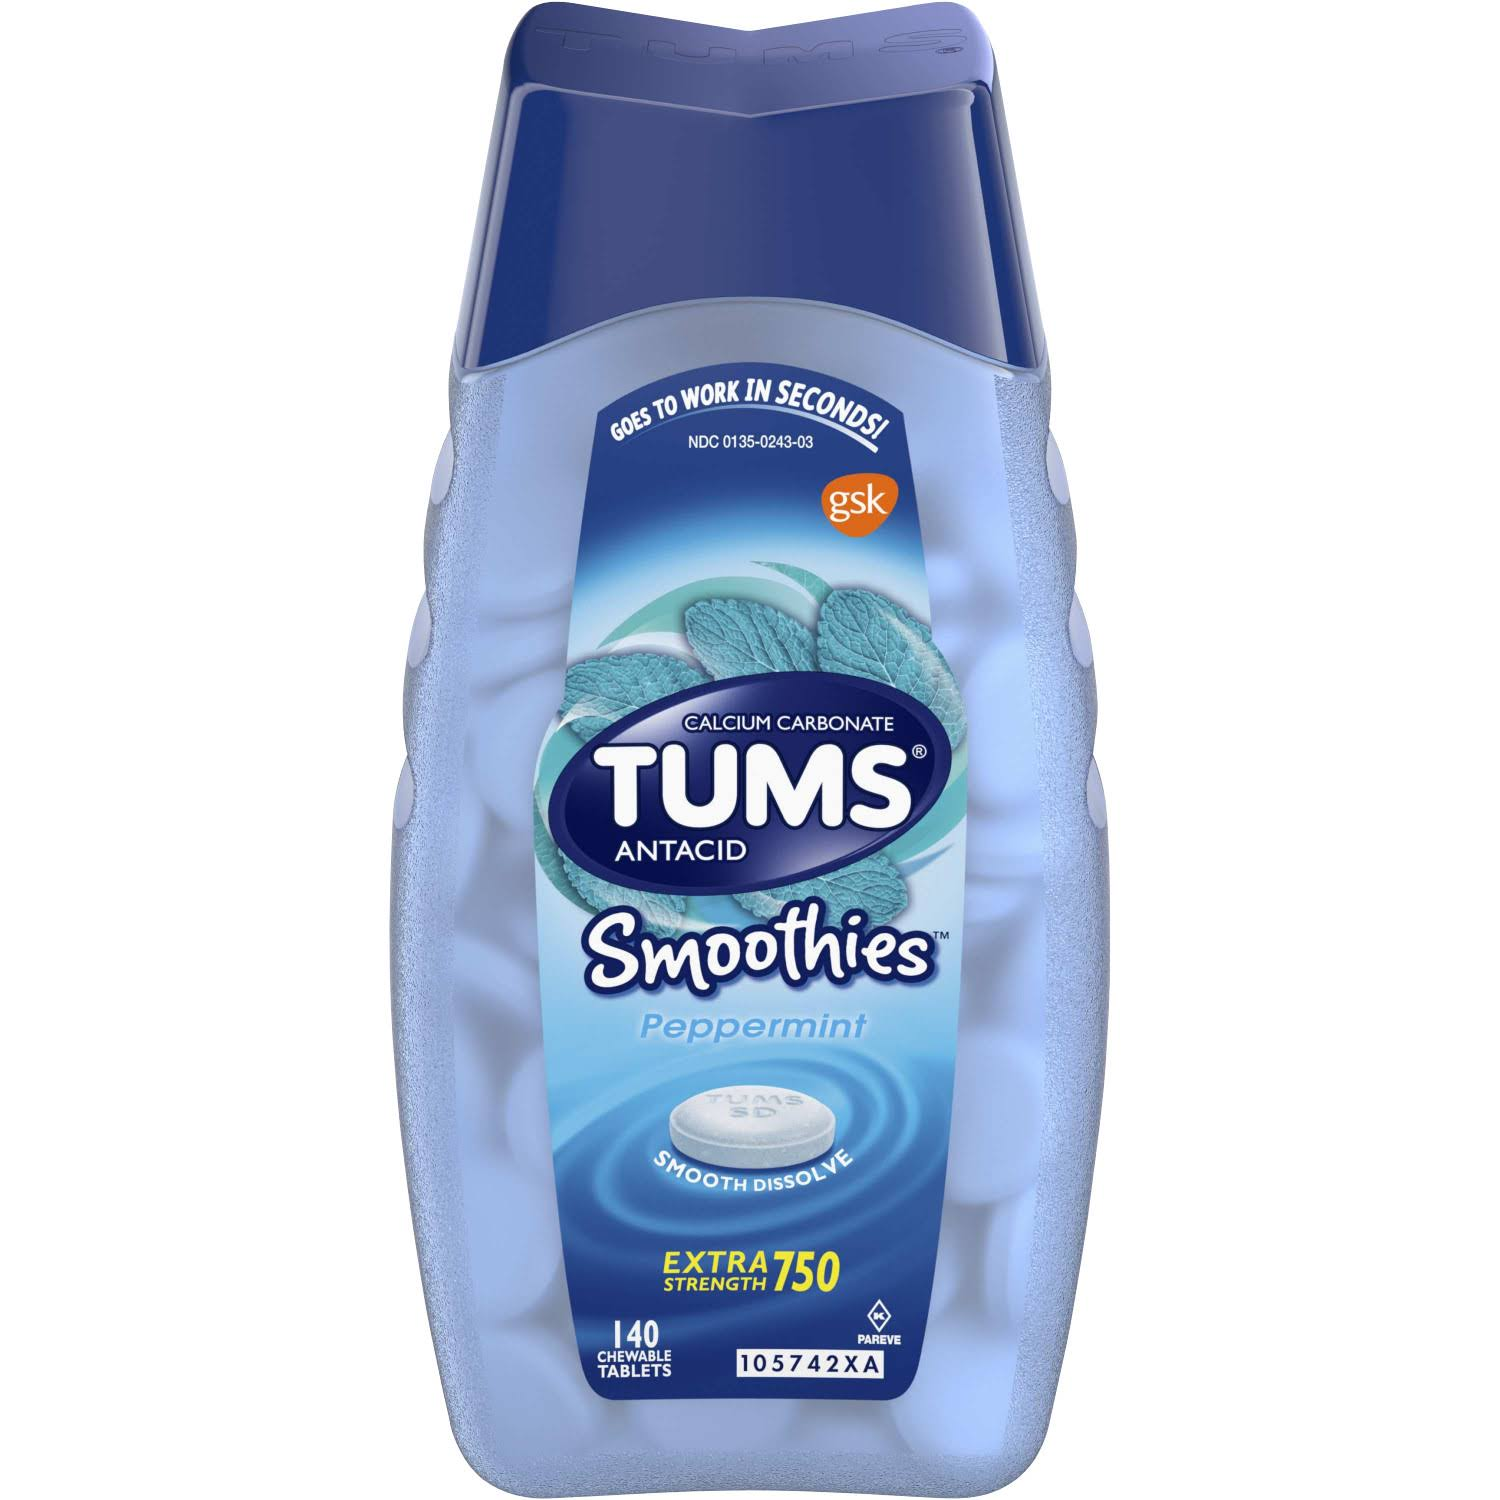 Tums Smoothies Antacid Calcium Supplement Peppermint - 140ct